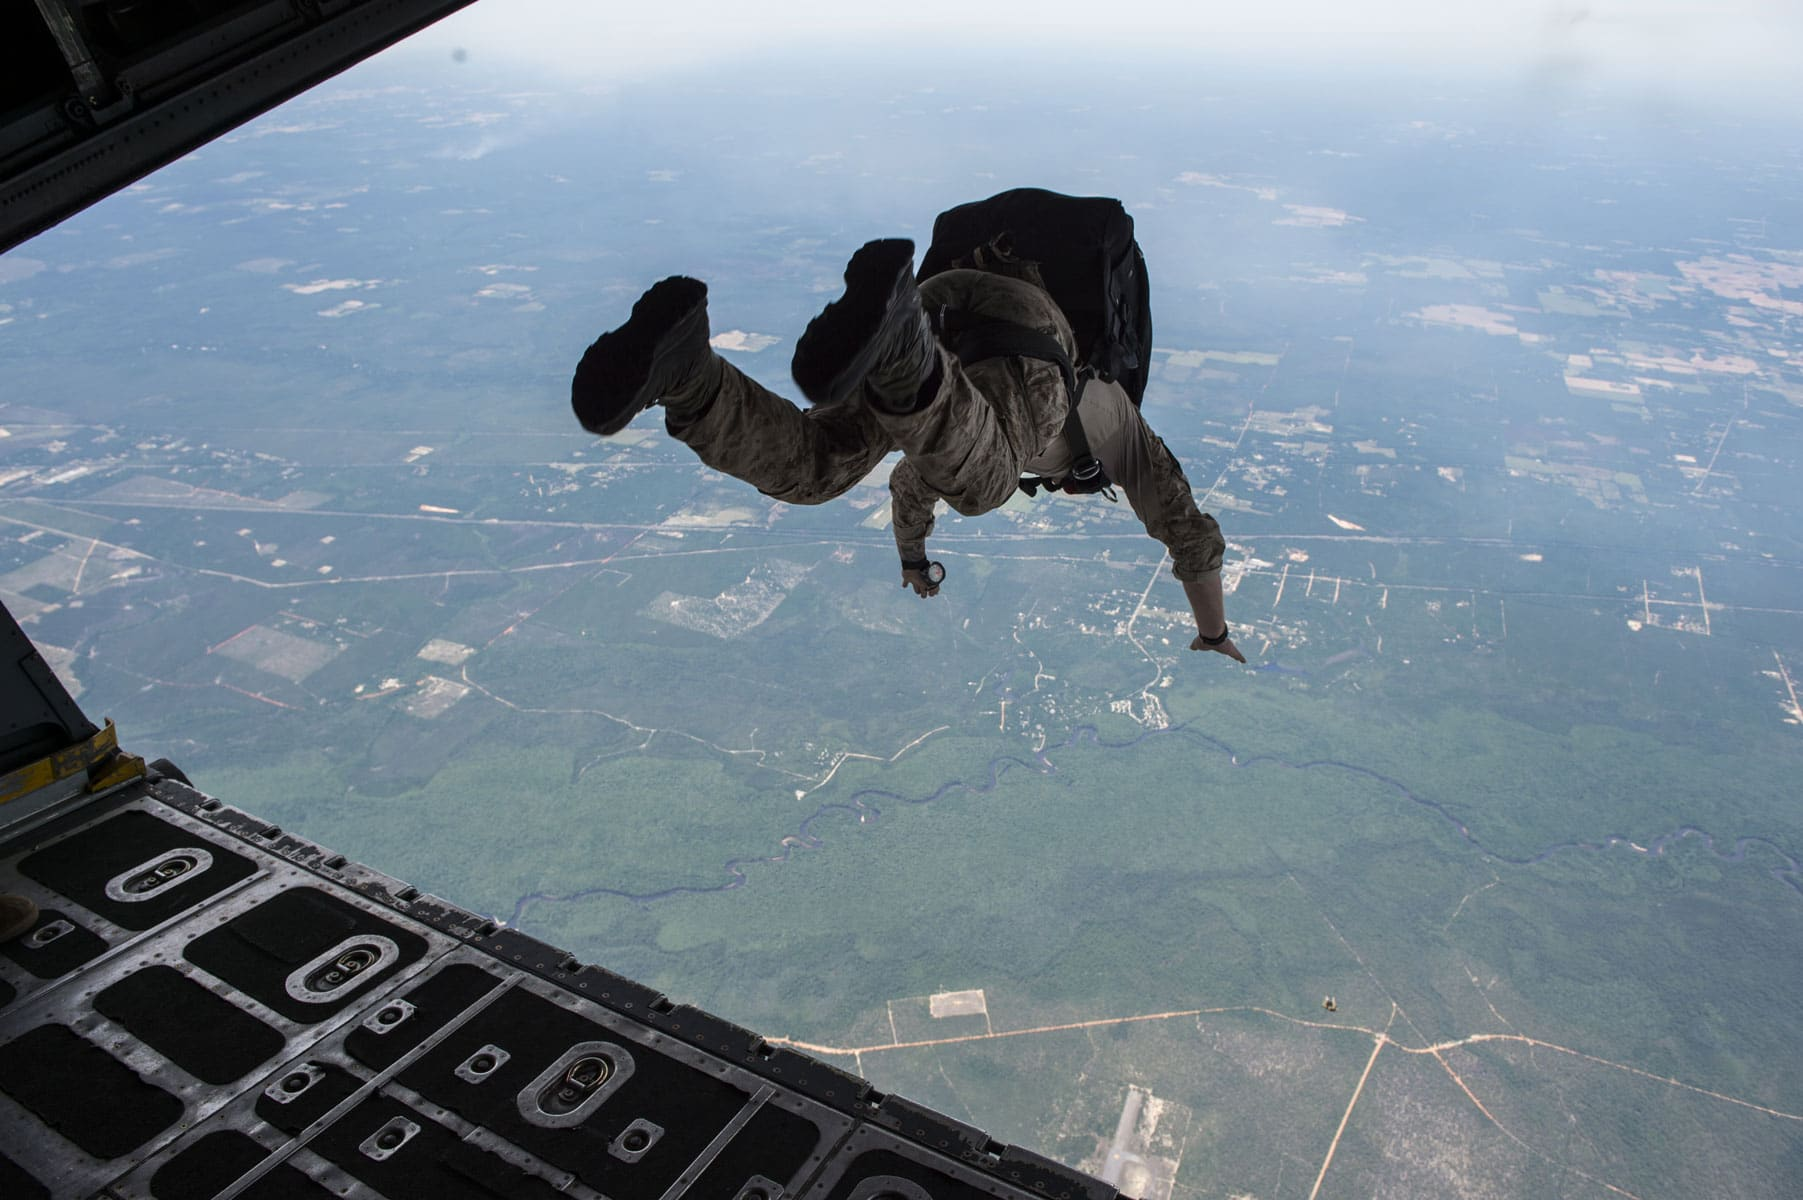 U.S. Navy Sea, Air, and Land Team Members conduct military free fall operations flying aboard a U.S. Air Force Special Operations Command MC-130 Talon II flown by the 19th Special Operations Squadron during TRIDENT 17 on Hurlburt Field, Florida.